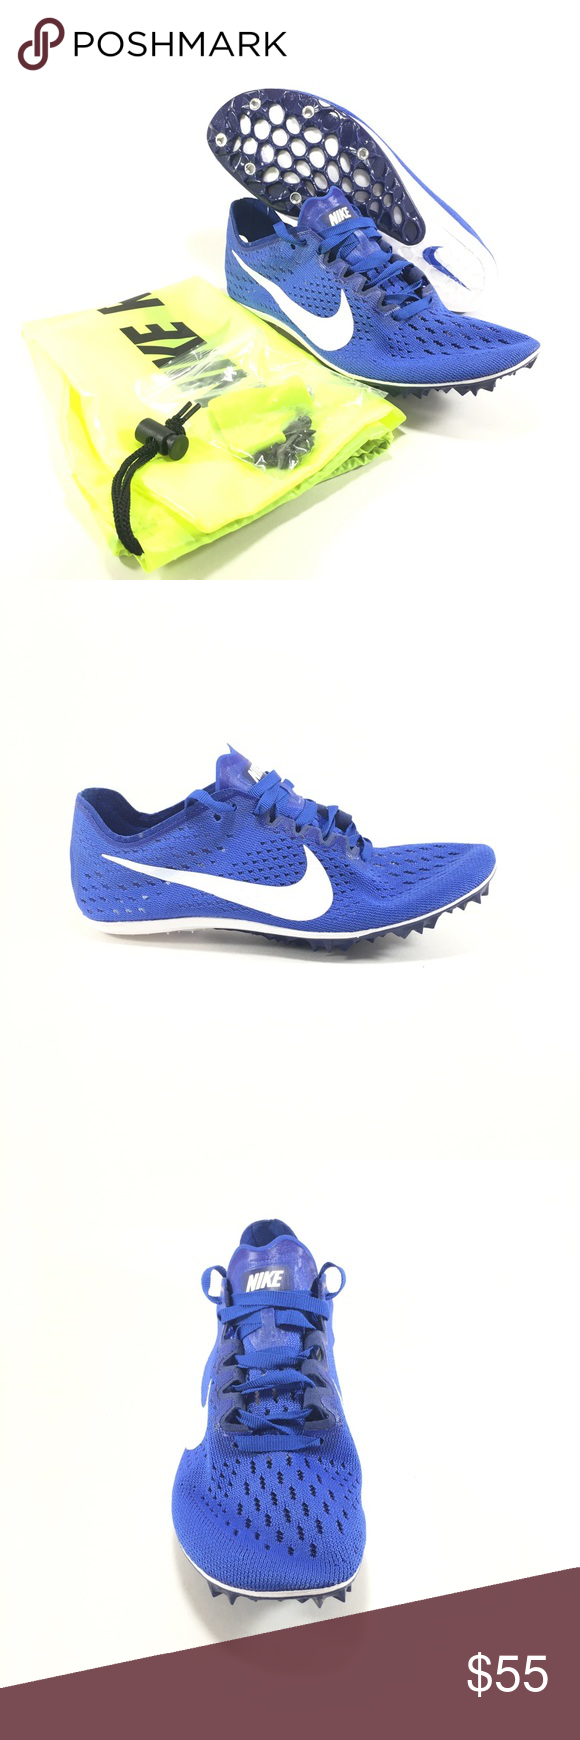 835997-411 Nike Zoom Victory 3 Track Running Spikes Blue White SZ